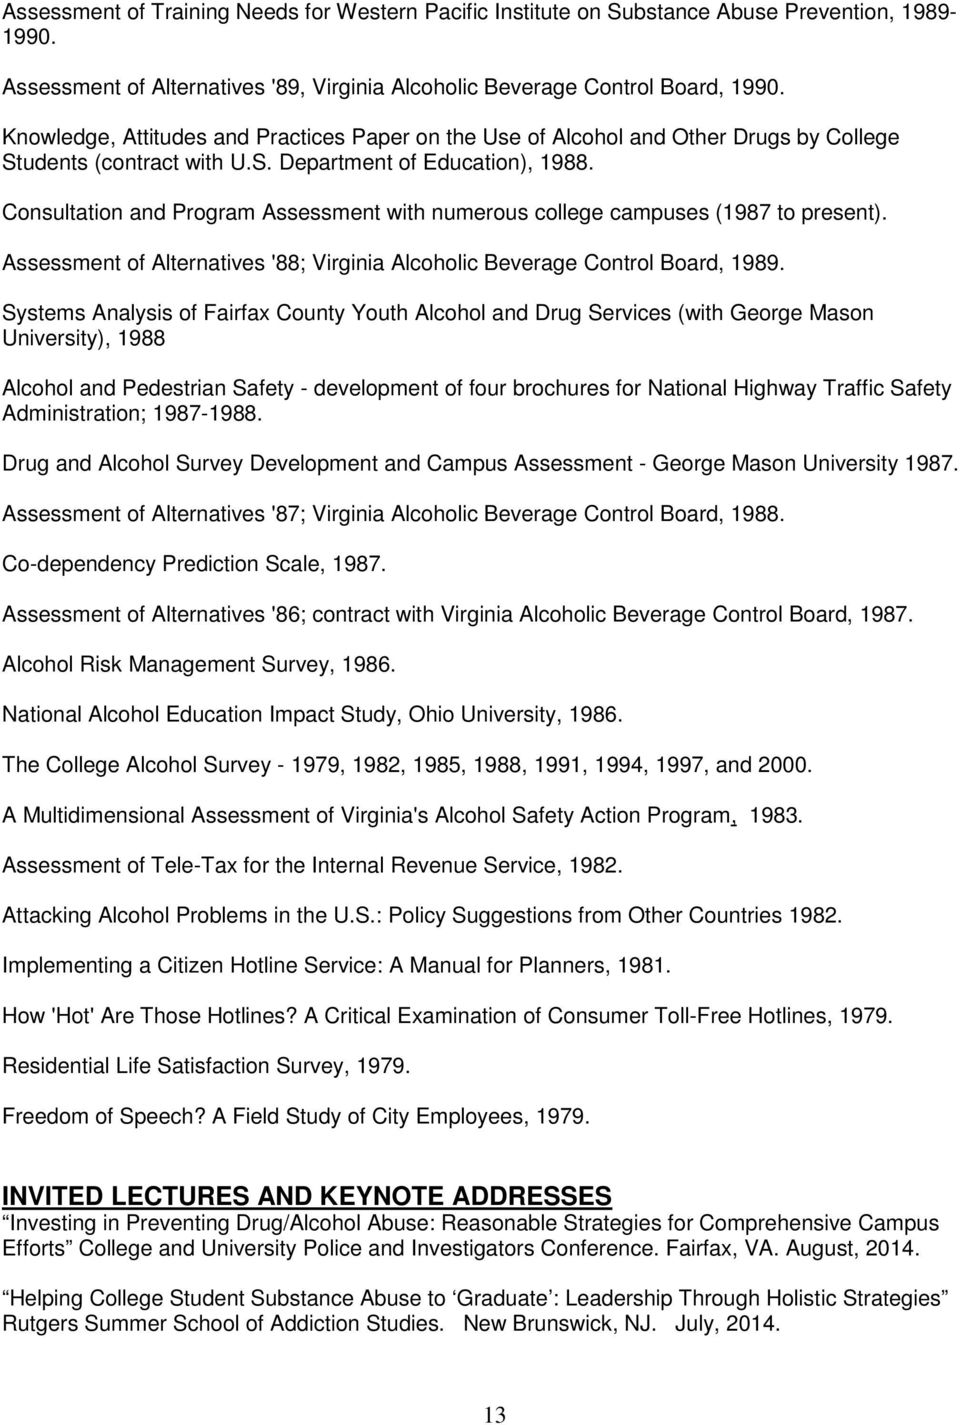 Consultation and Program Assessment with numerous college campuses (1987 to present). Assessment of Alternatives '88; Virginia Alcoholic Beverage Control Board, 1989.